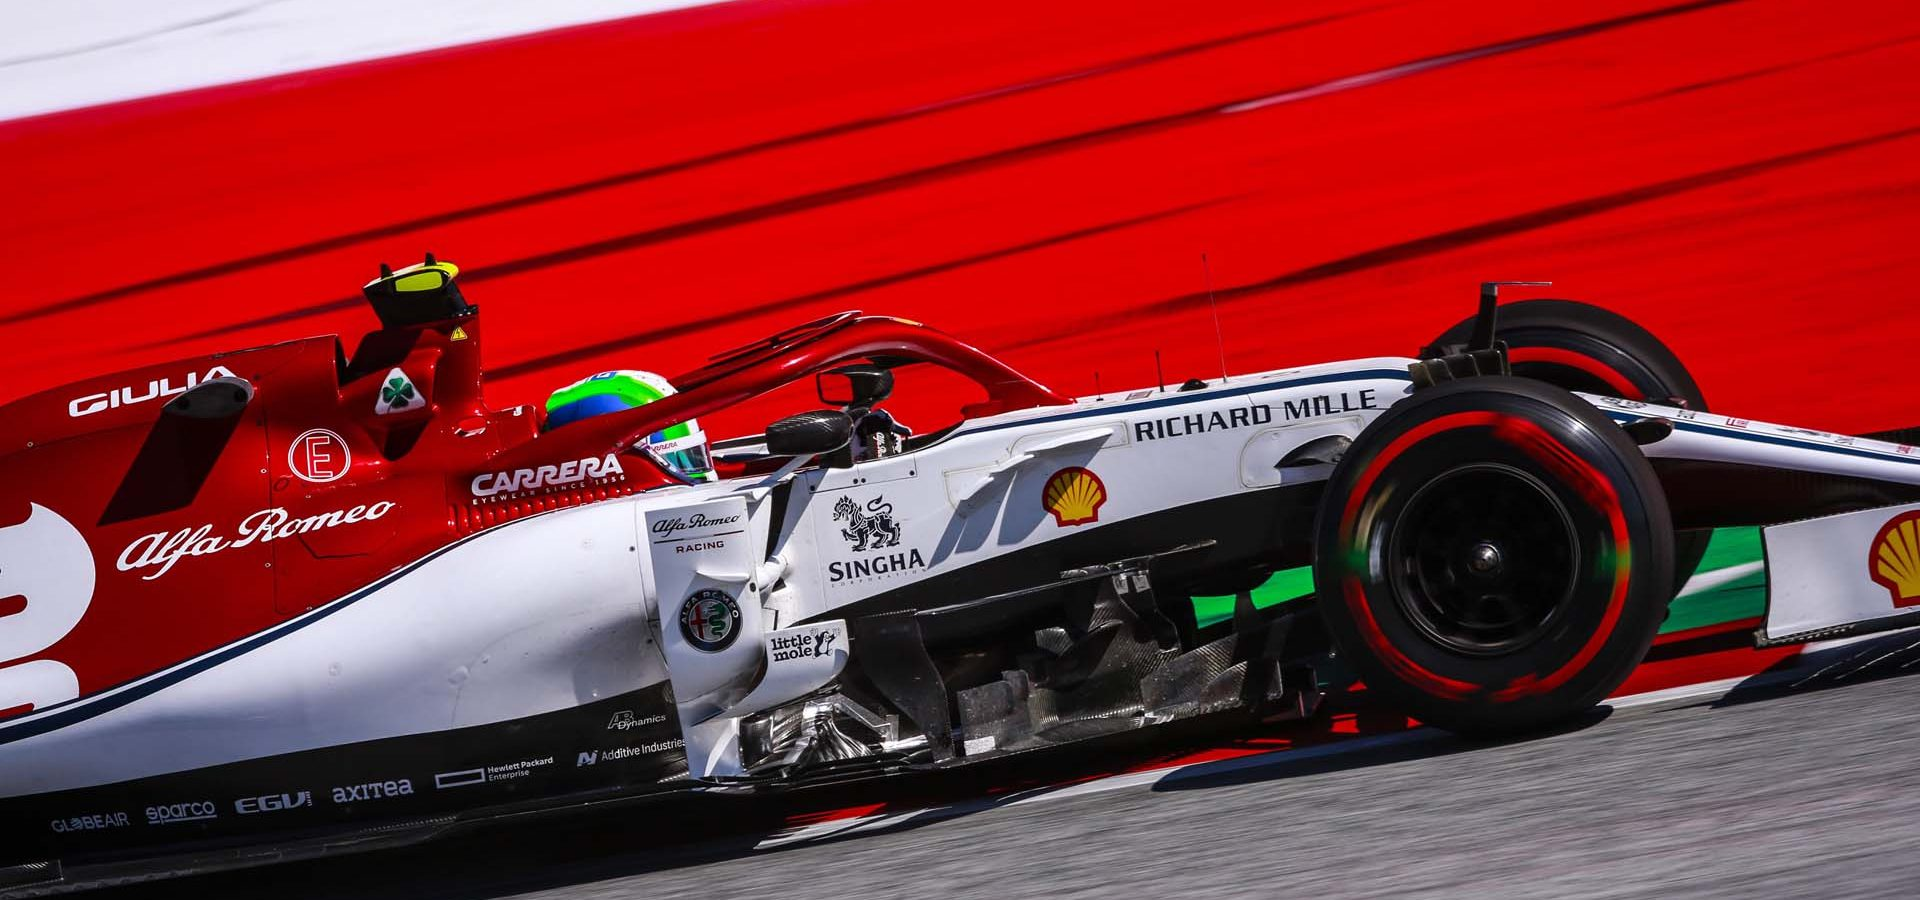 99 GIOVINAZZI Antonio (ita), Alfa Romeo Racing C38, action during the 2019 Formula One World Championship, Grand Prix of Austria from June 27 to 31, in Spielberg, Austria - Photo Xavi Bonilla / DPPI